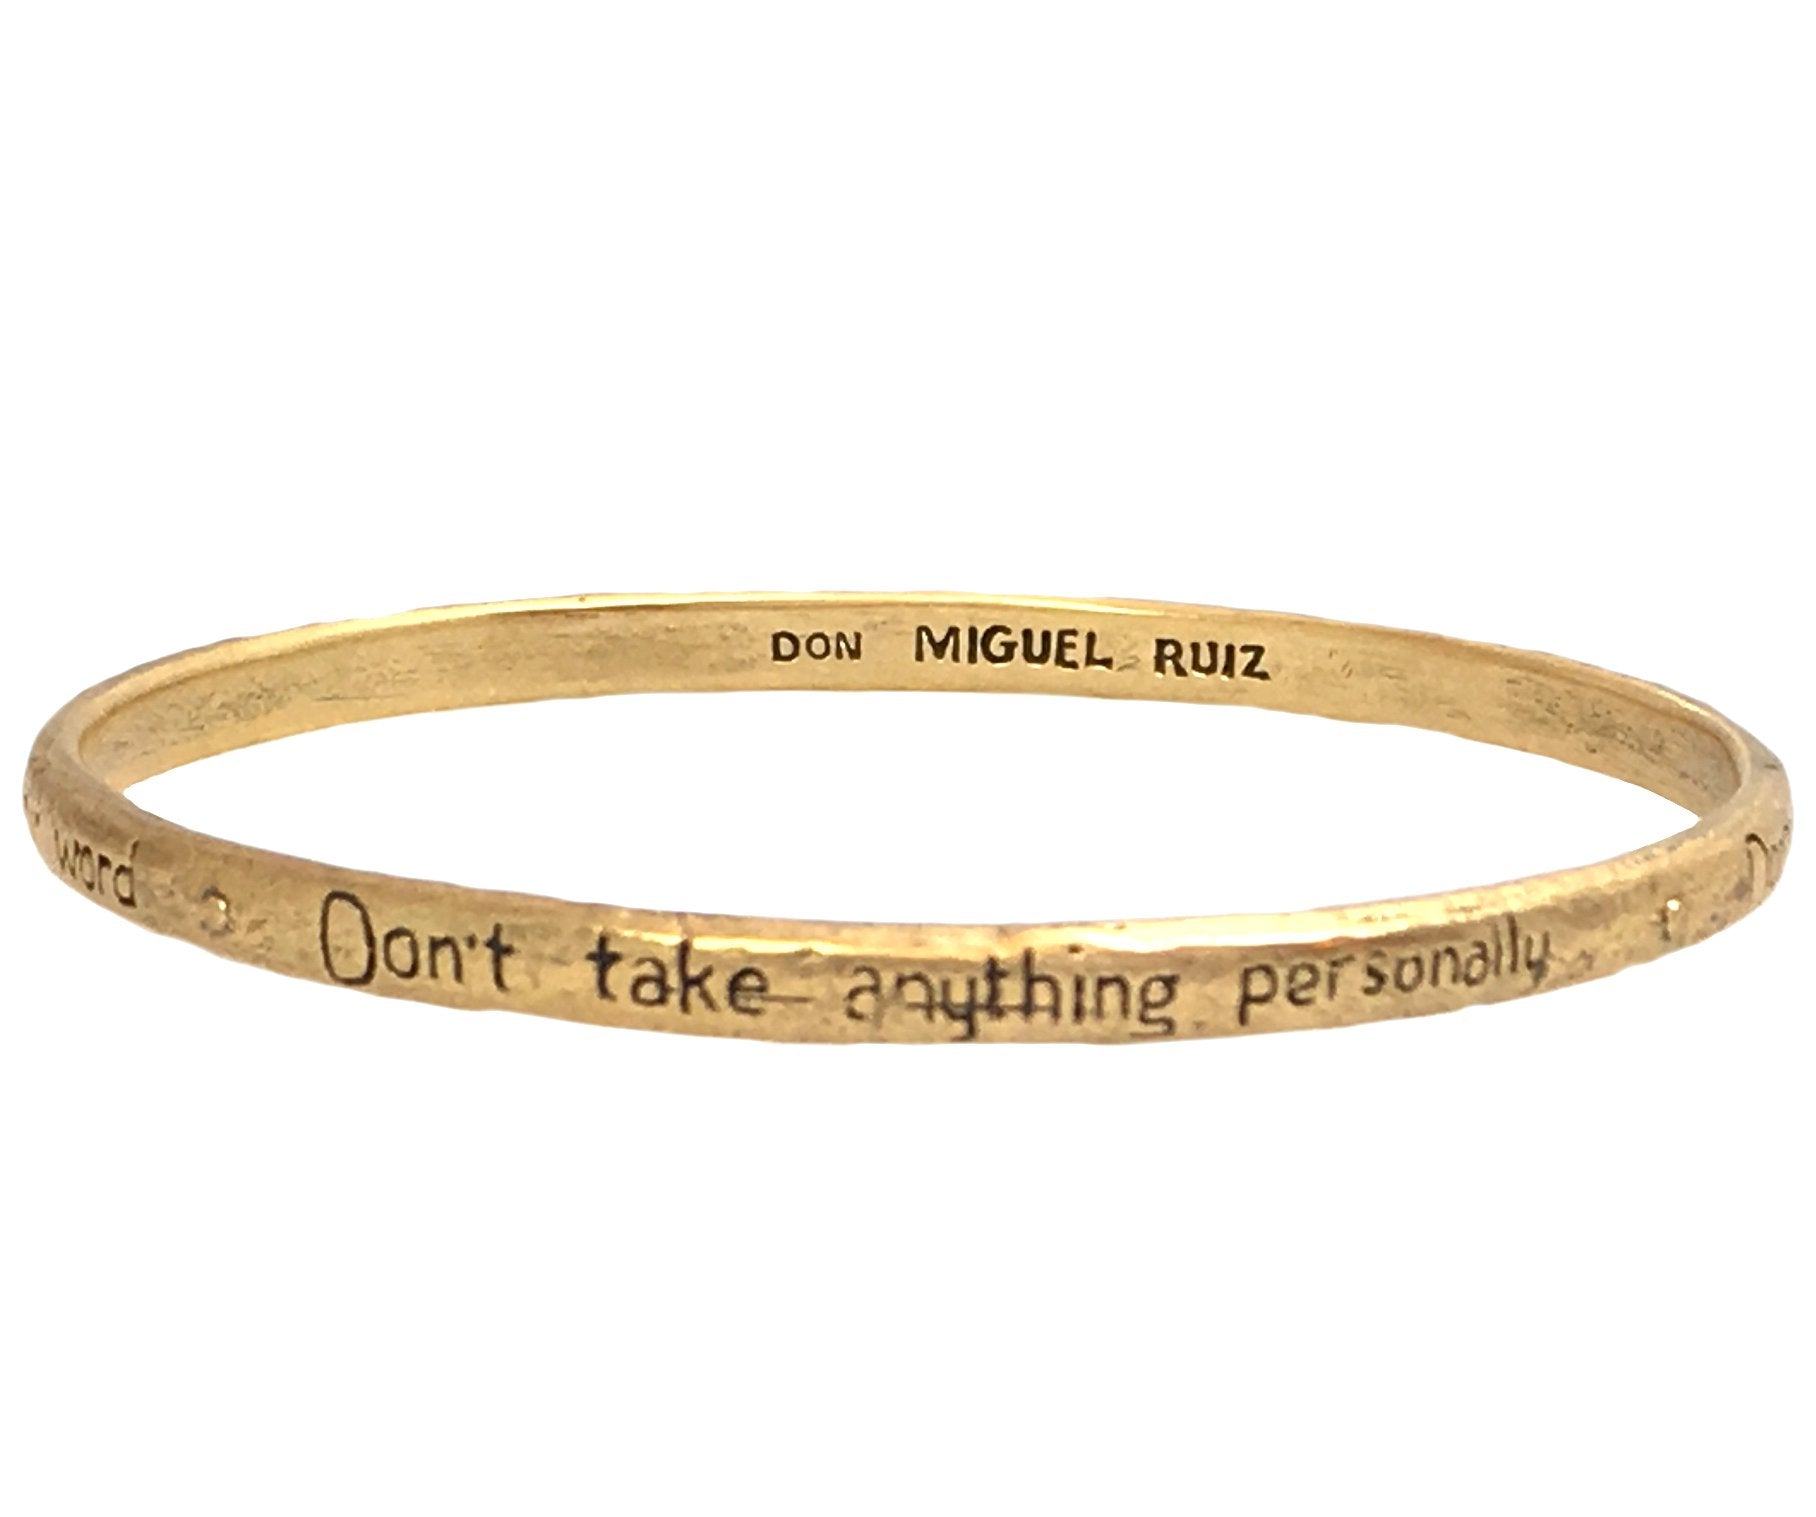 The Four Agreements Bronze Single Bangle | Bracelet in Bronze | Handcrafted | Inspirational Jewelry | Jewelry Evolution8 | Made in Bali